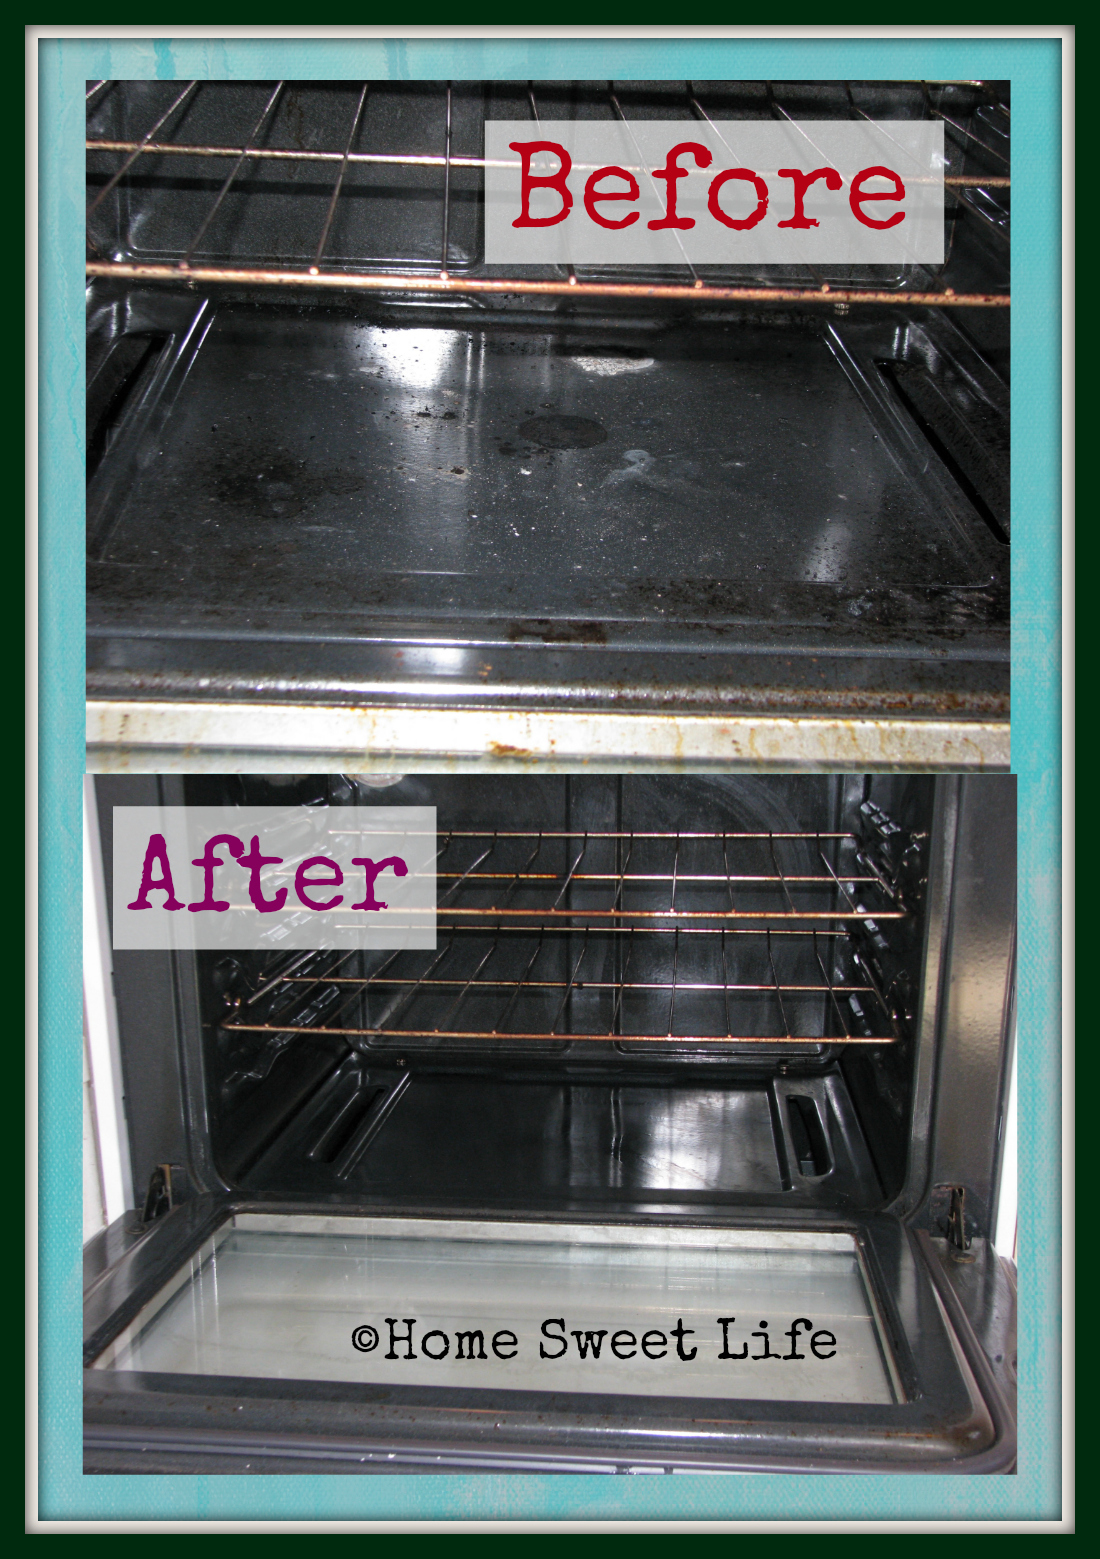 34 weeks of cleaning with friends - the stove